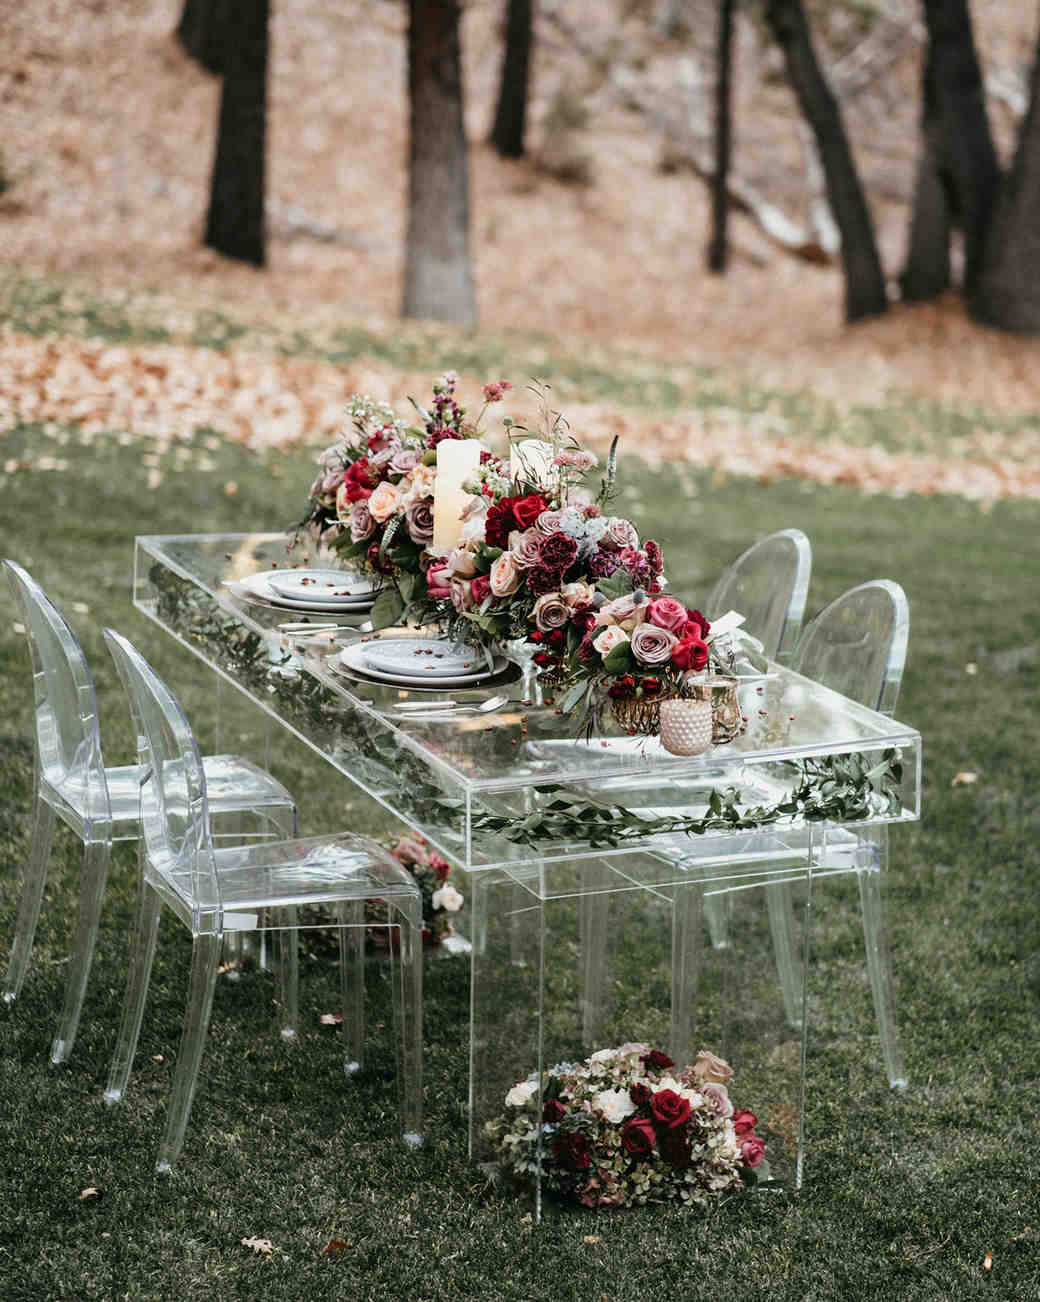 lucite table and chairs with rose floral arrangement set up on a lawn